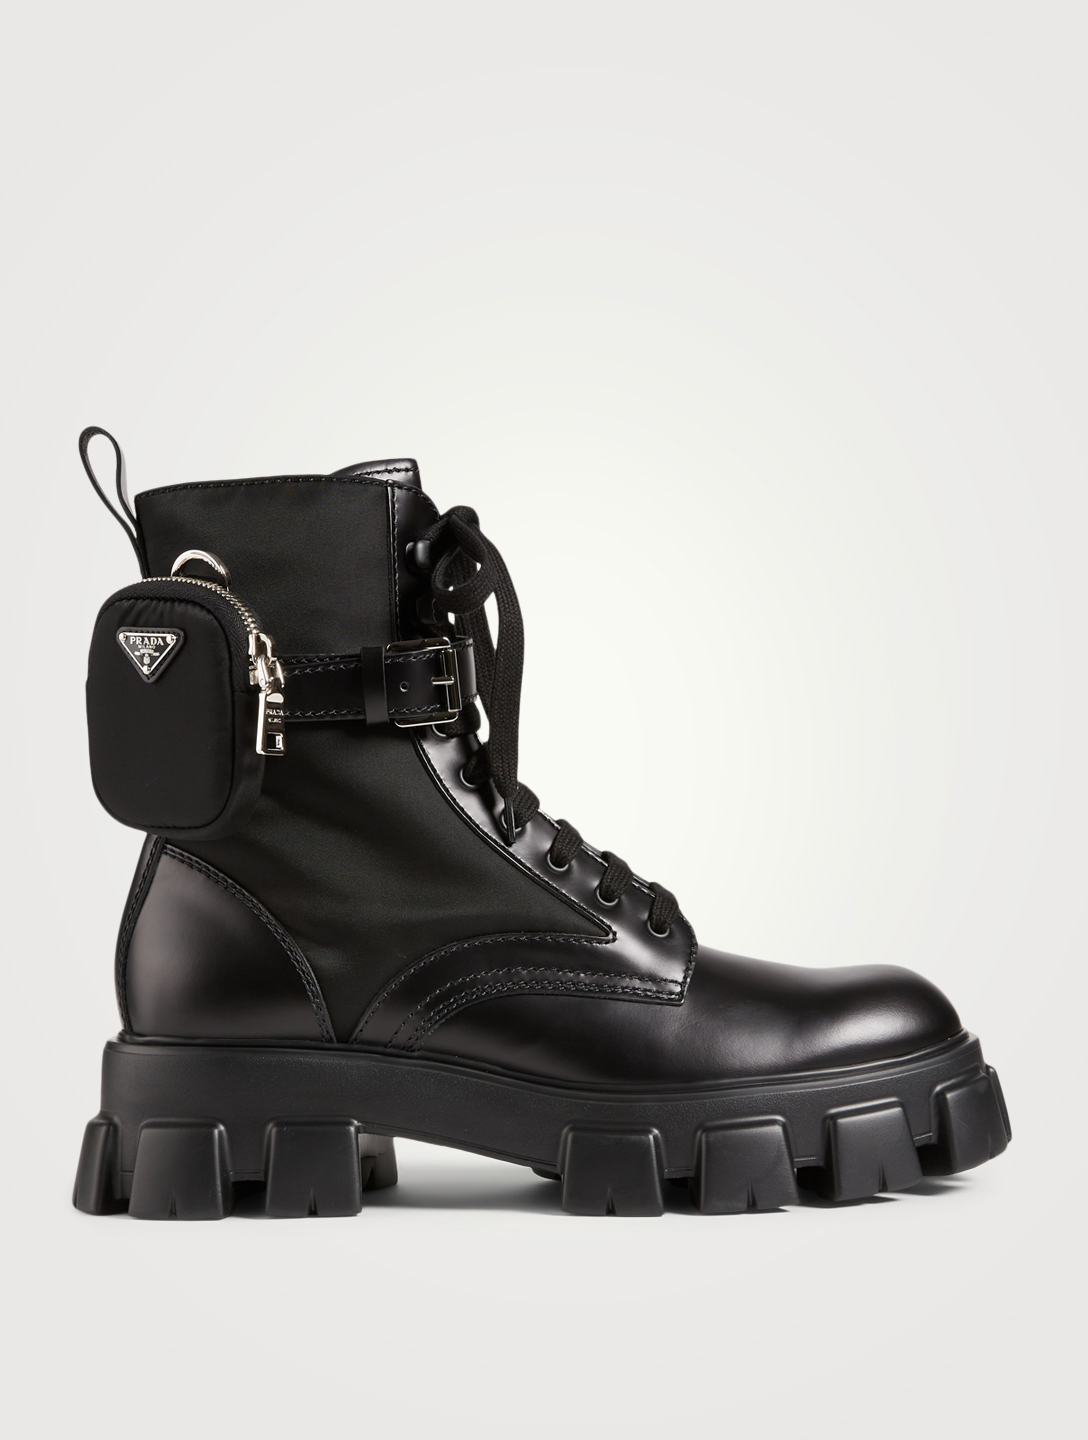 PRADA Leather And Nylon Platform Combat Boots With Pouches Men's Black